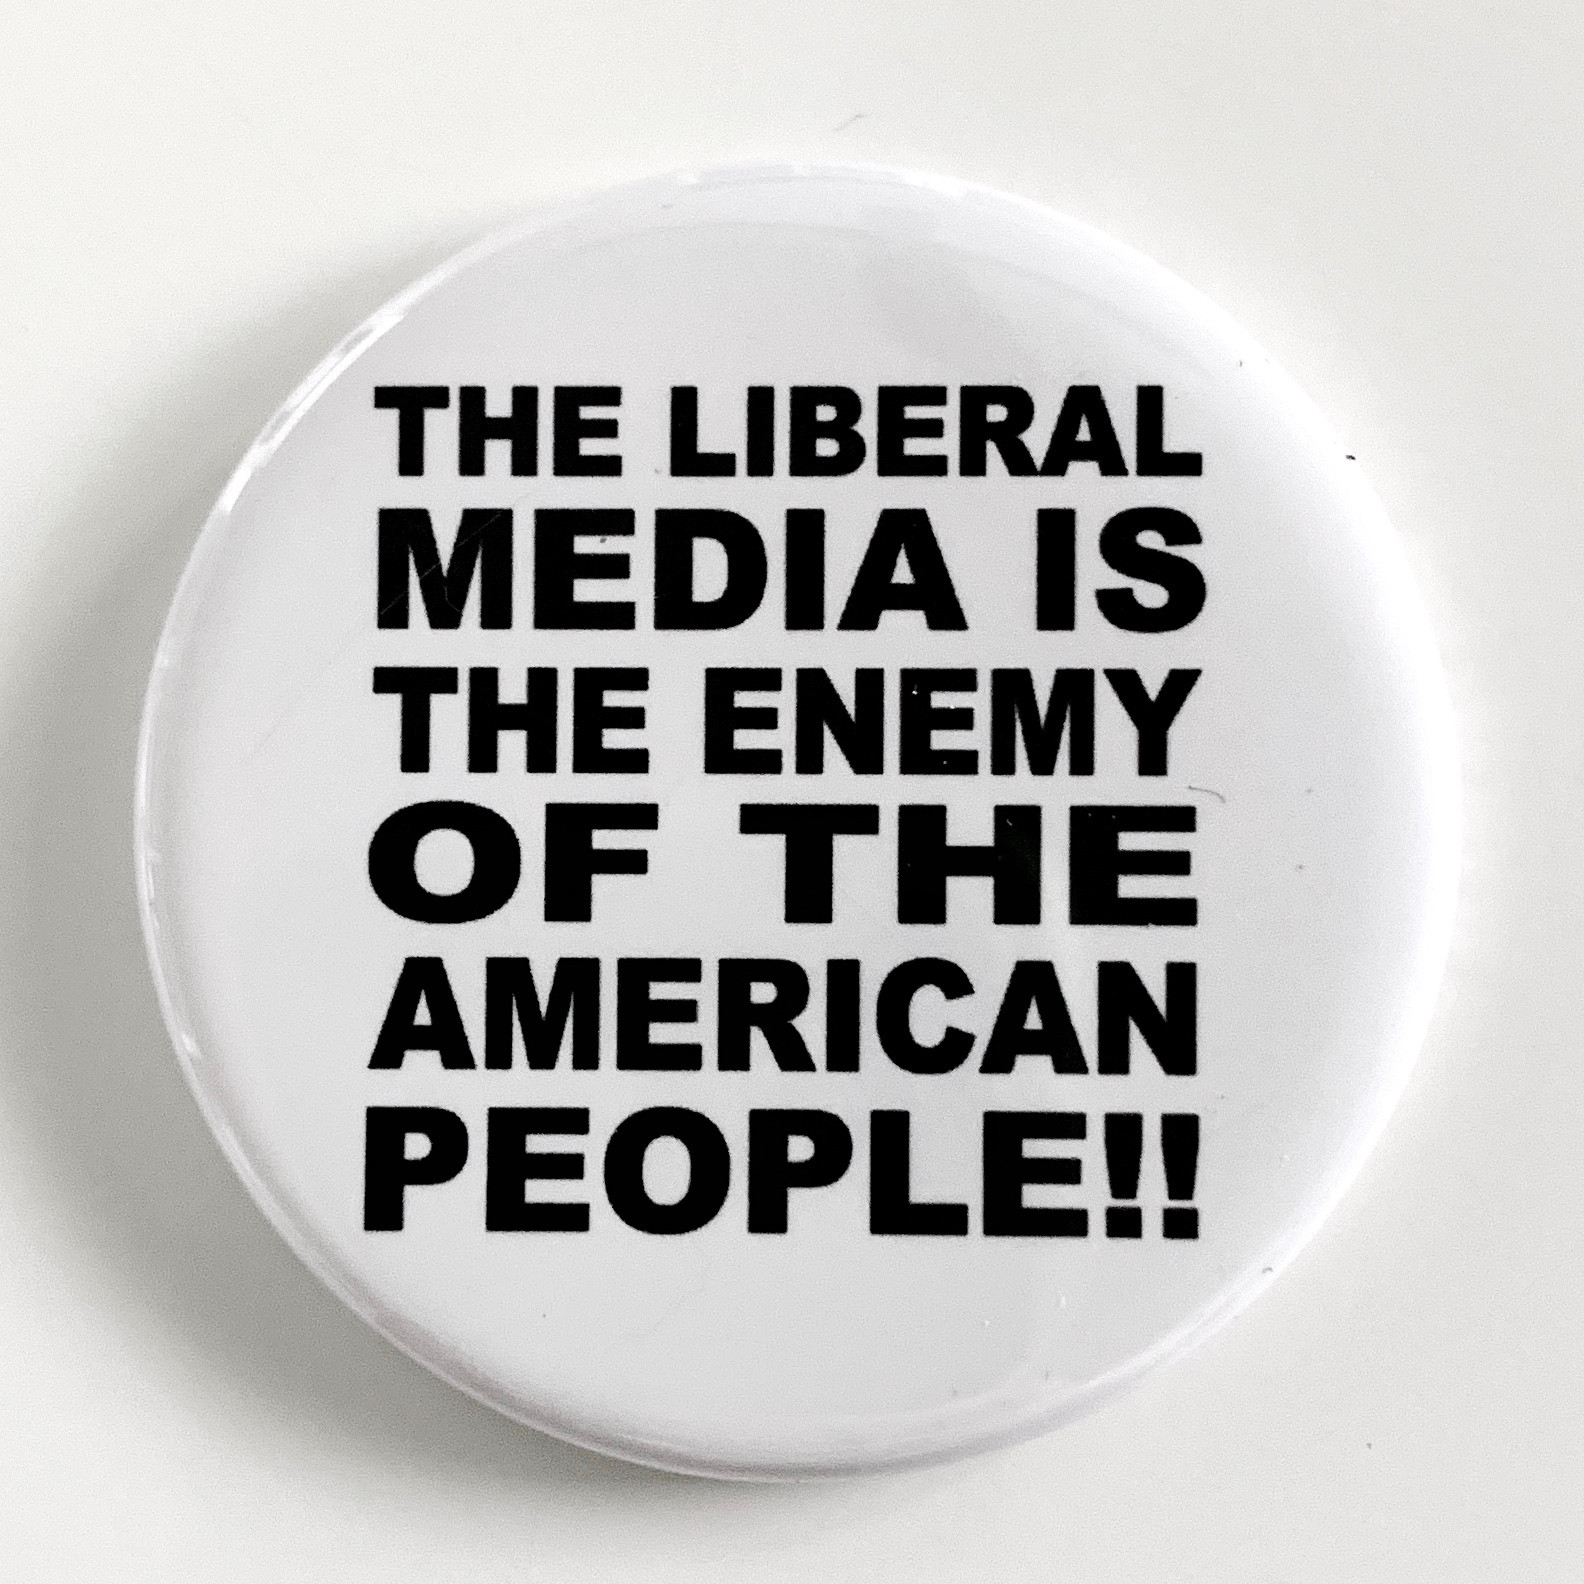 The Liberal Media Is the Enemy of the American People!!